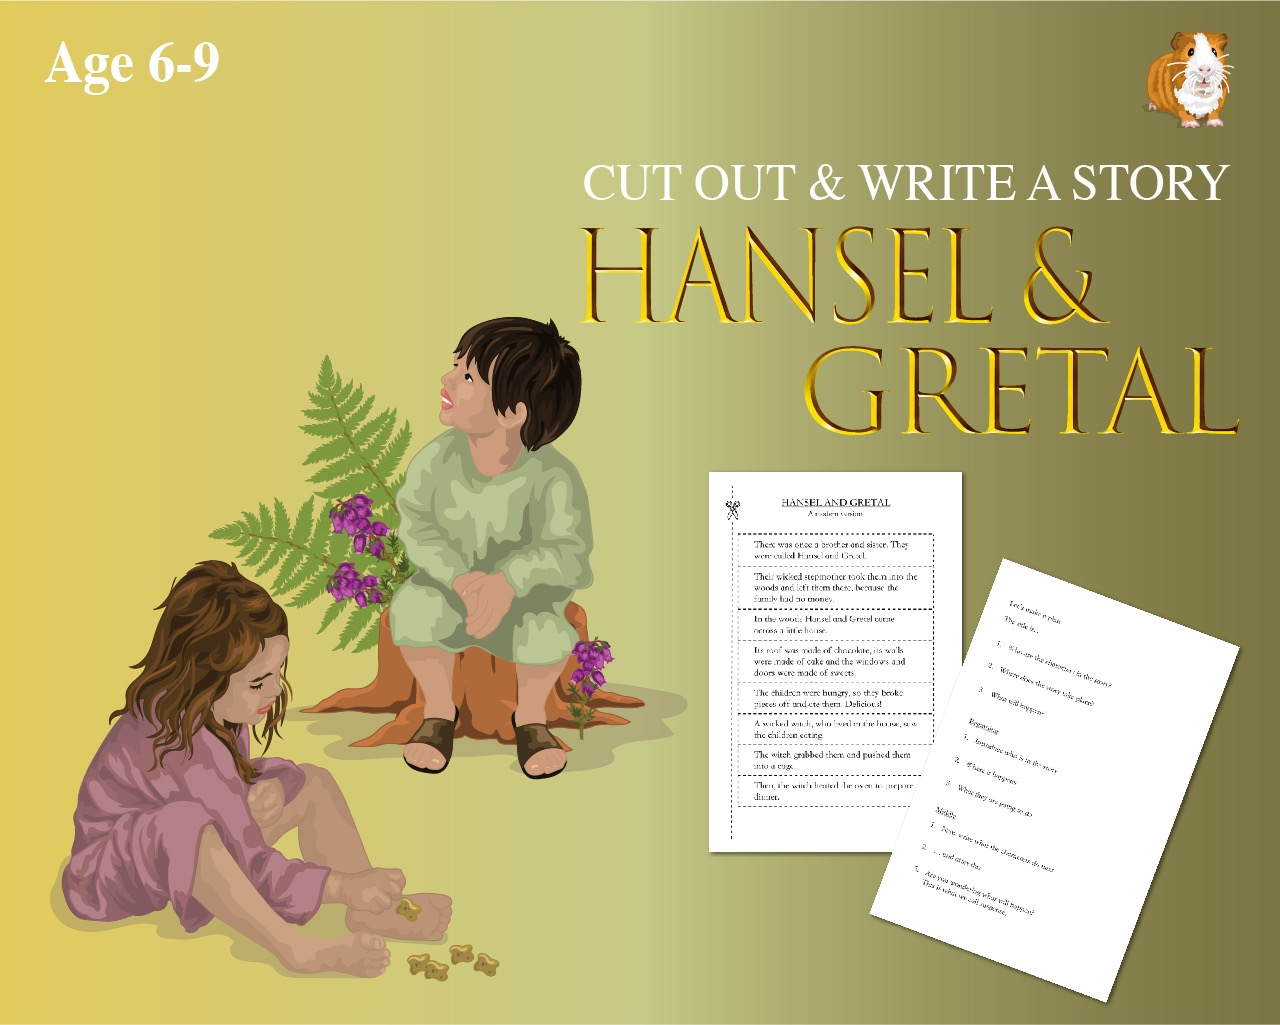 Cut Out And Write The Story Of 'Hansel And Gretal' (6-9 years)